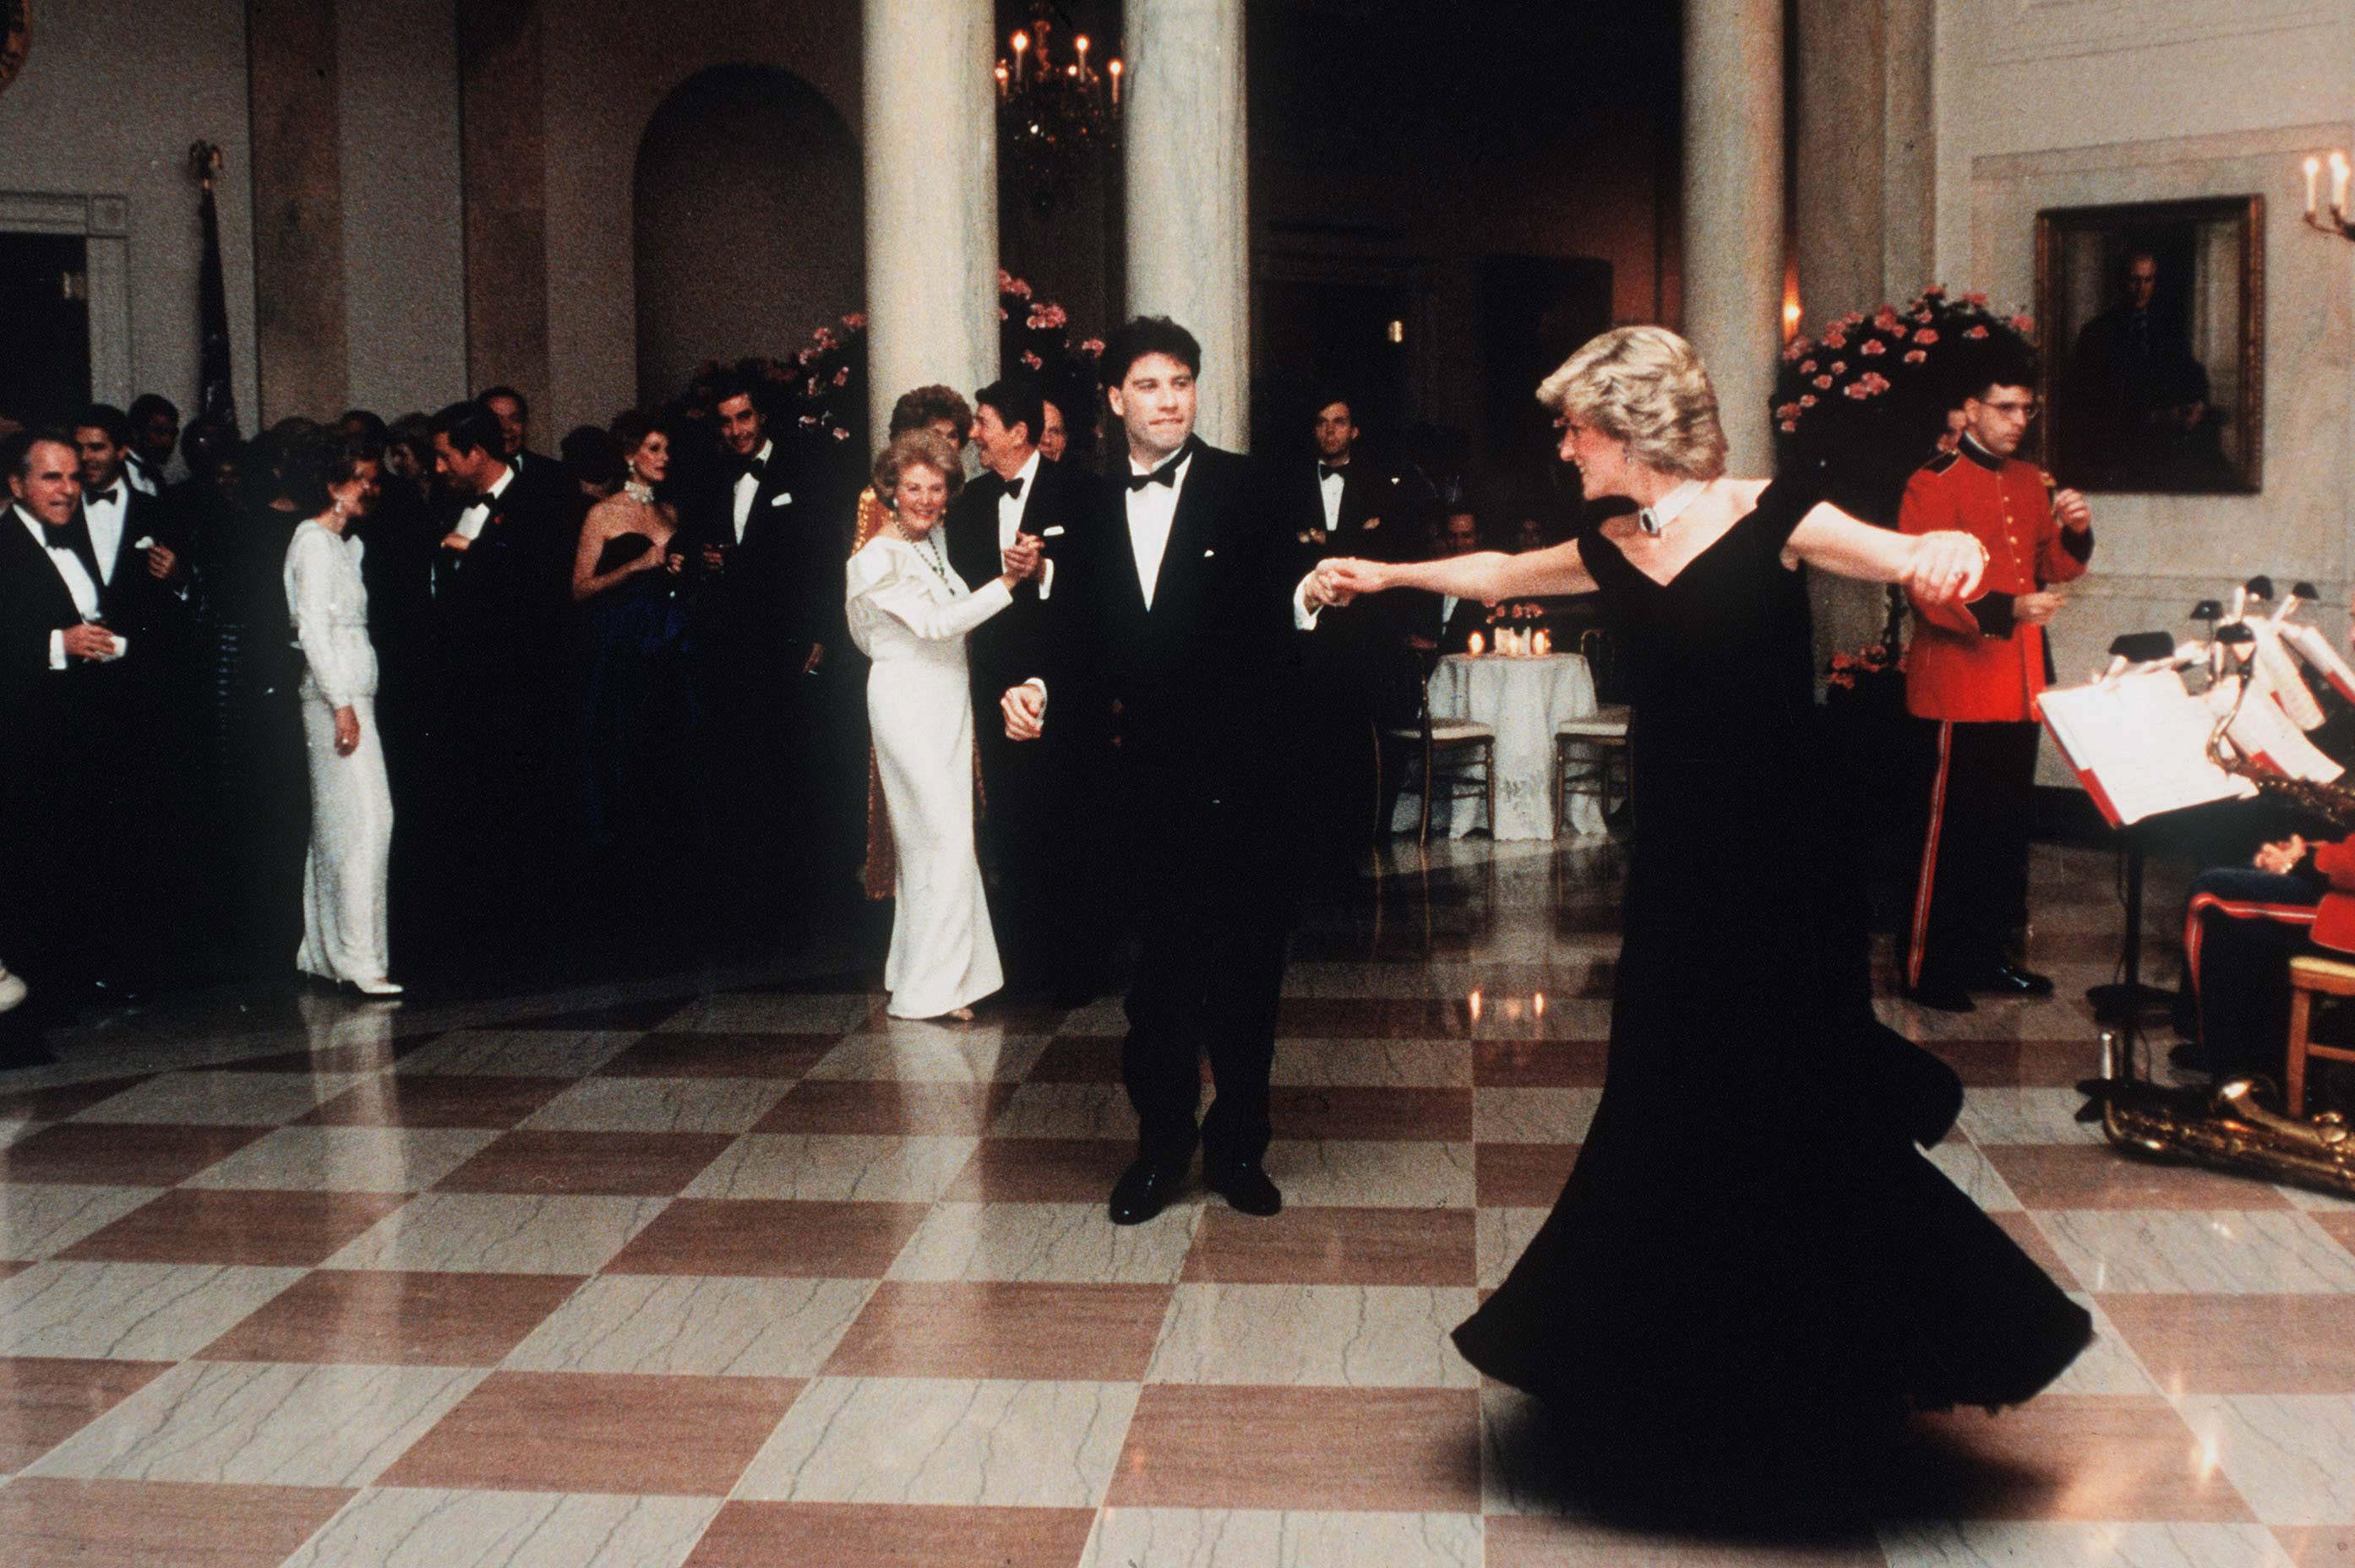 Diana, Princess Of Wales, watched by President Ronald Reagan and wife Nancy, dances with John Travolta at the White House, USA on November 9, 1985. | Photo: Getty Images